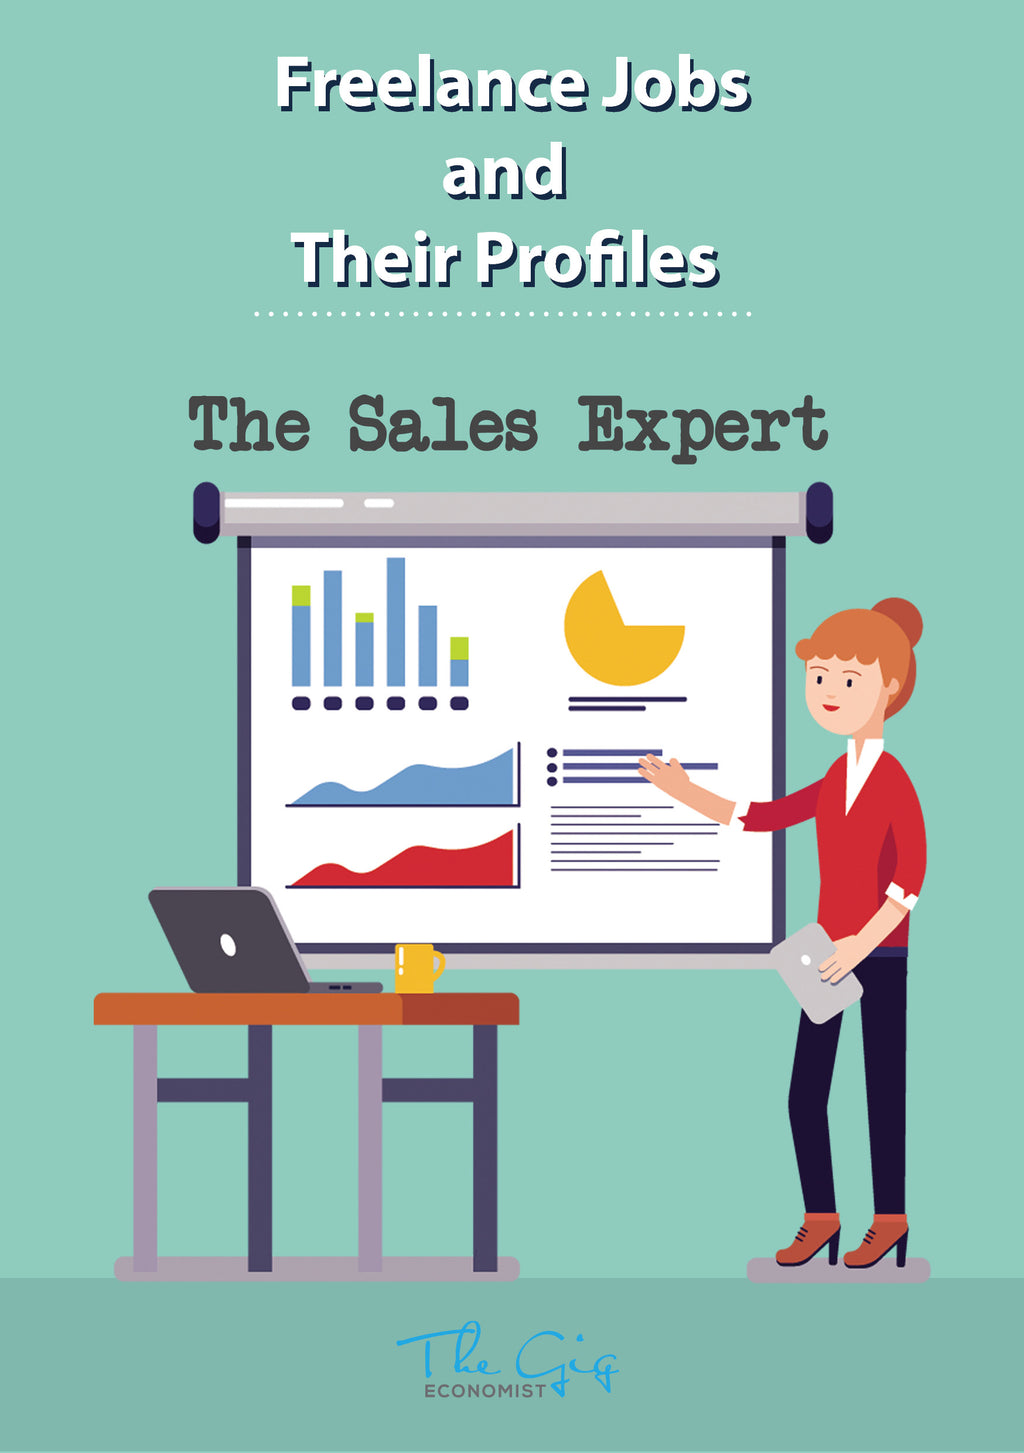 Freelance Sales Expert Job Profile | The Gig Economist